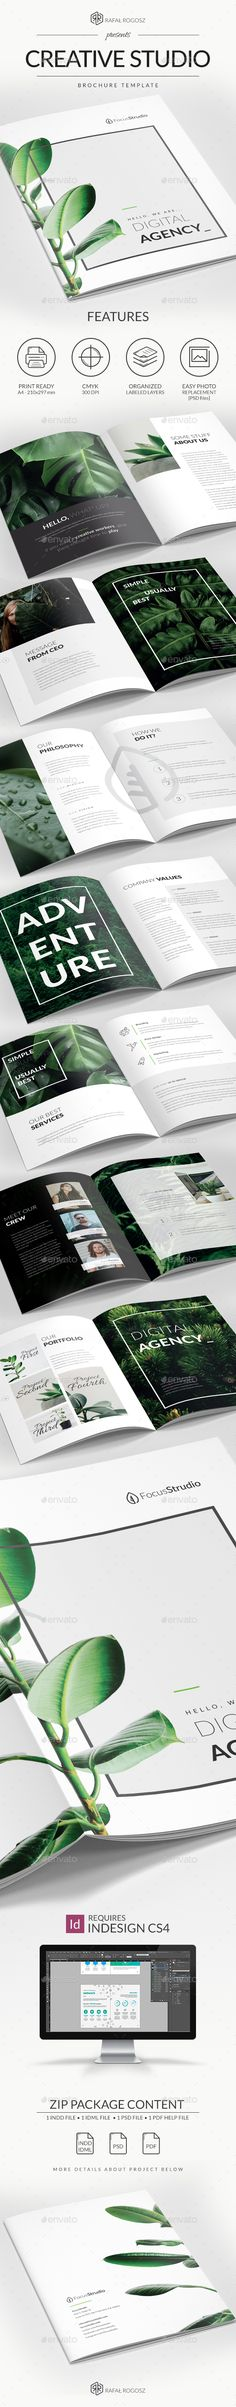 Creative Studio Brochure A4